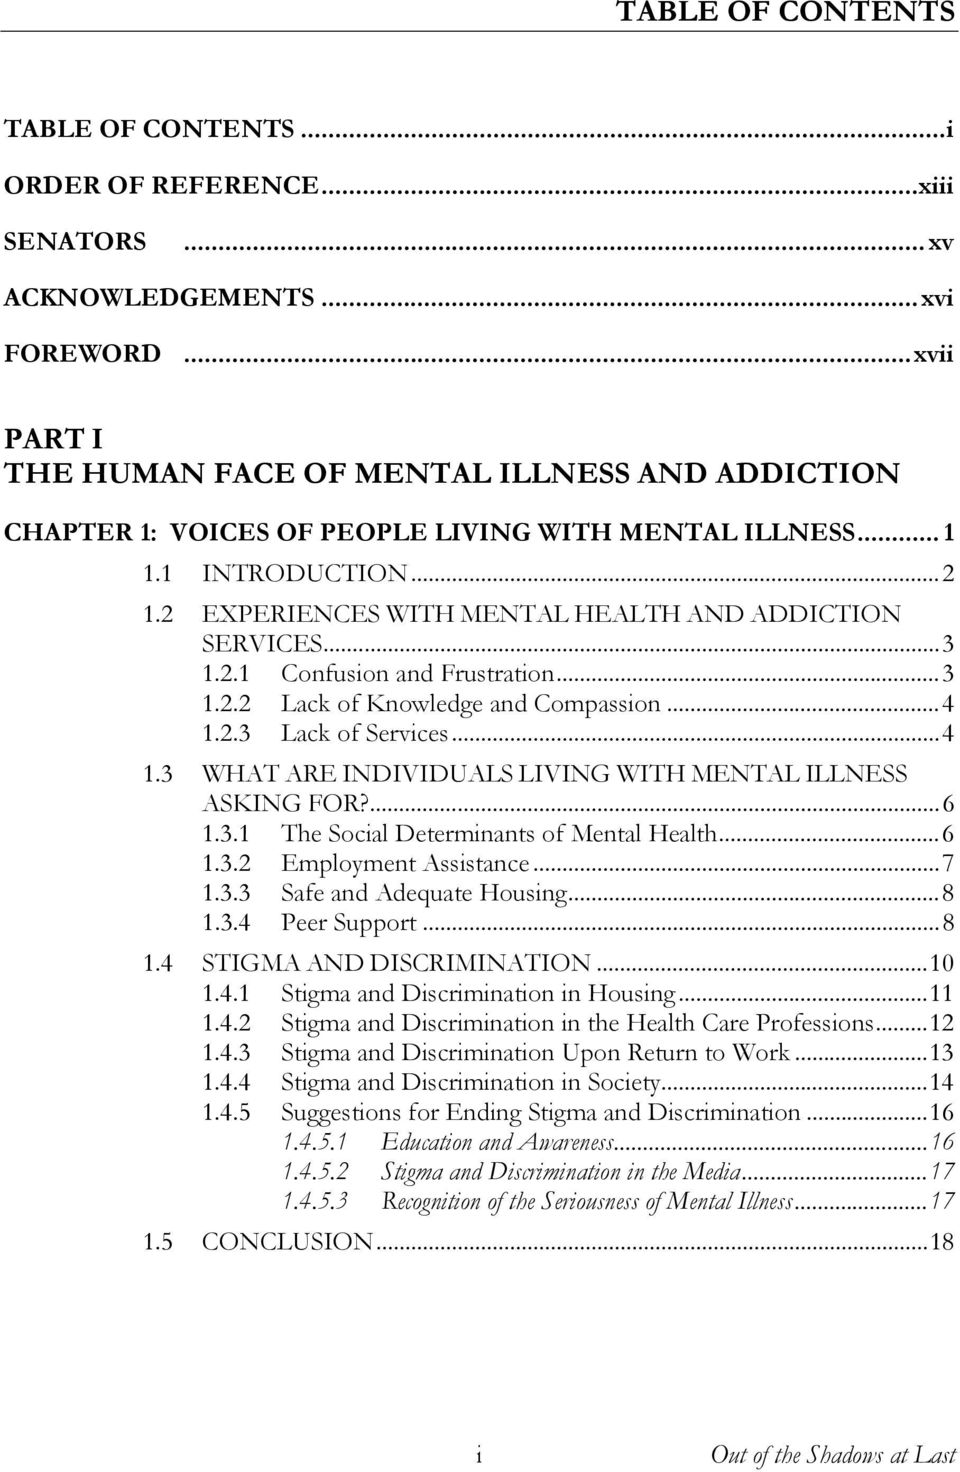 ..3 1.2.1 Confusion and Frustration...3 1.2.2 Lack of Knowledge and Compassion...4 1.2.3 Lack of Services...4 1.3 WHAT ARE INDIVIDUALS LIVING WITH MENTAL ILLNESS ASKING FOR?...6 1.3.1 The Social Determinants of Mental Health.